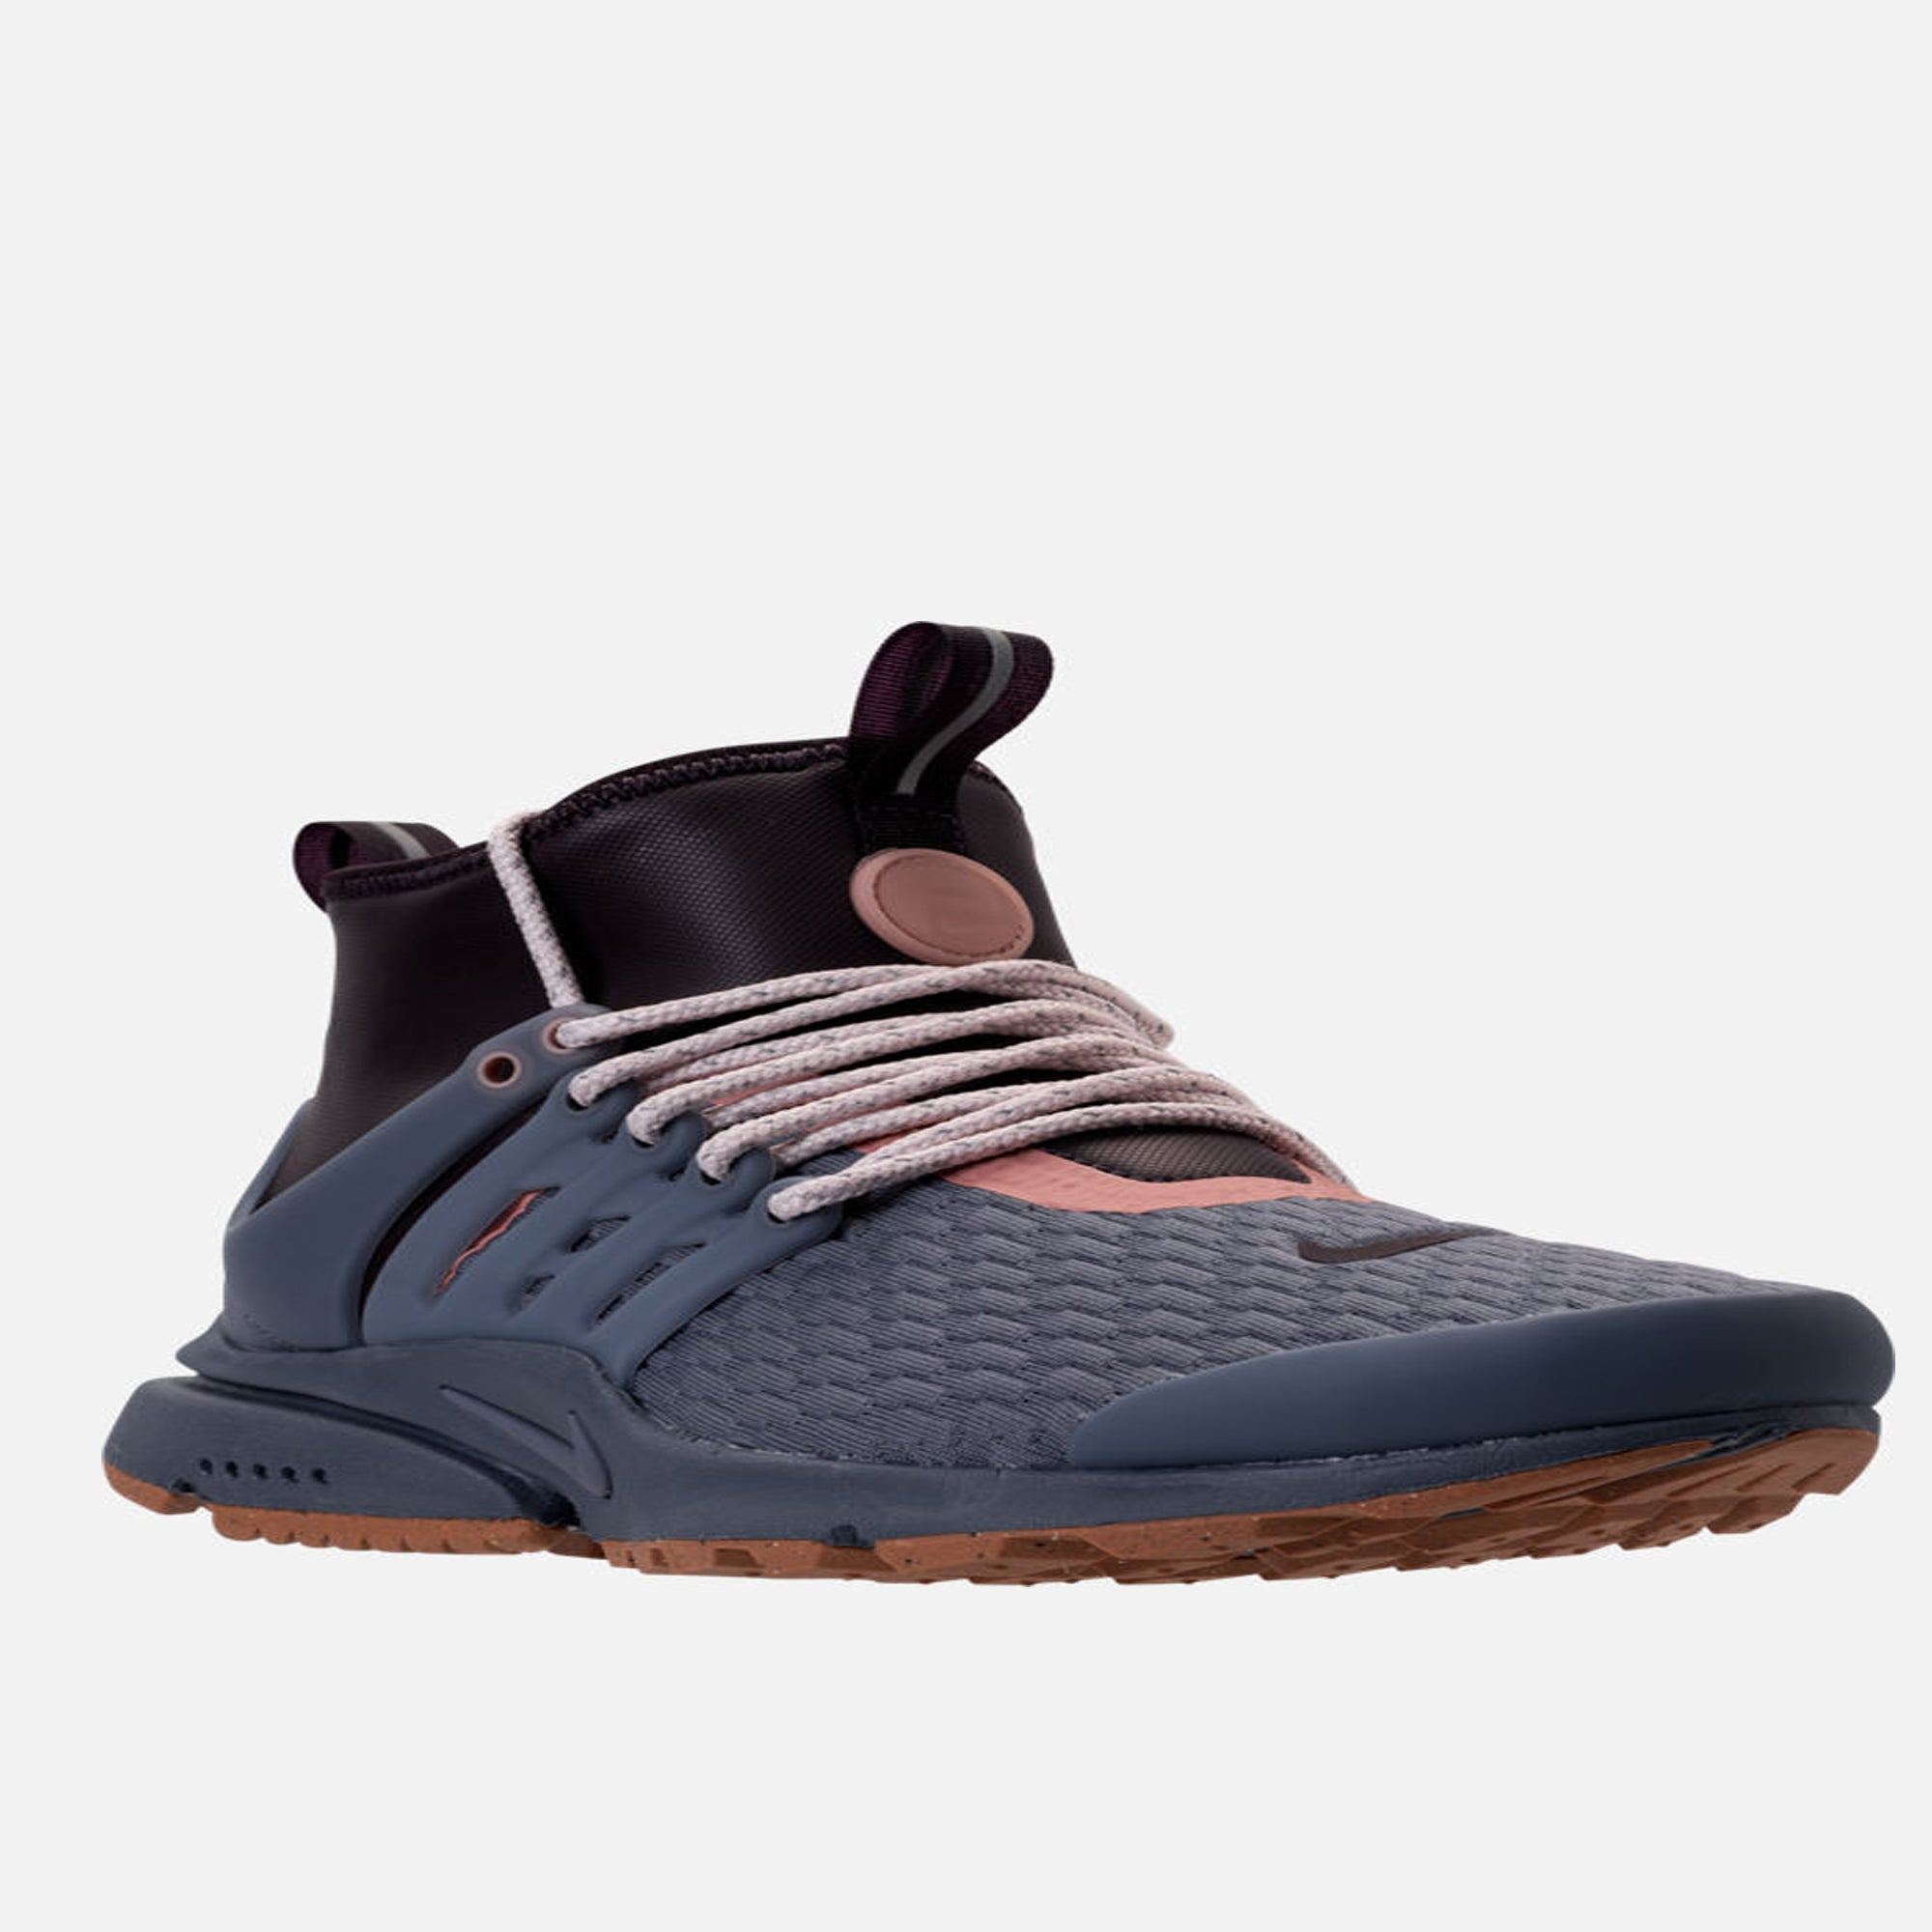 check out 38f36 4e962 Women s Nike AIR Presto MID Utility Premium Casual Shoes Light Carbon Port  Wine Gum